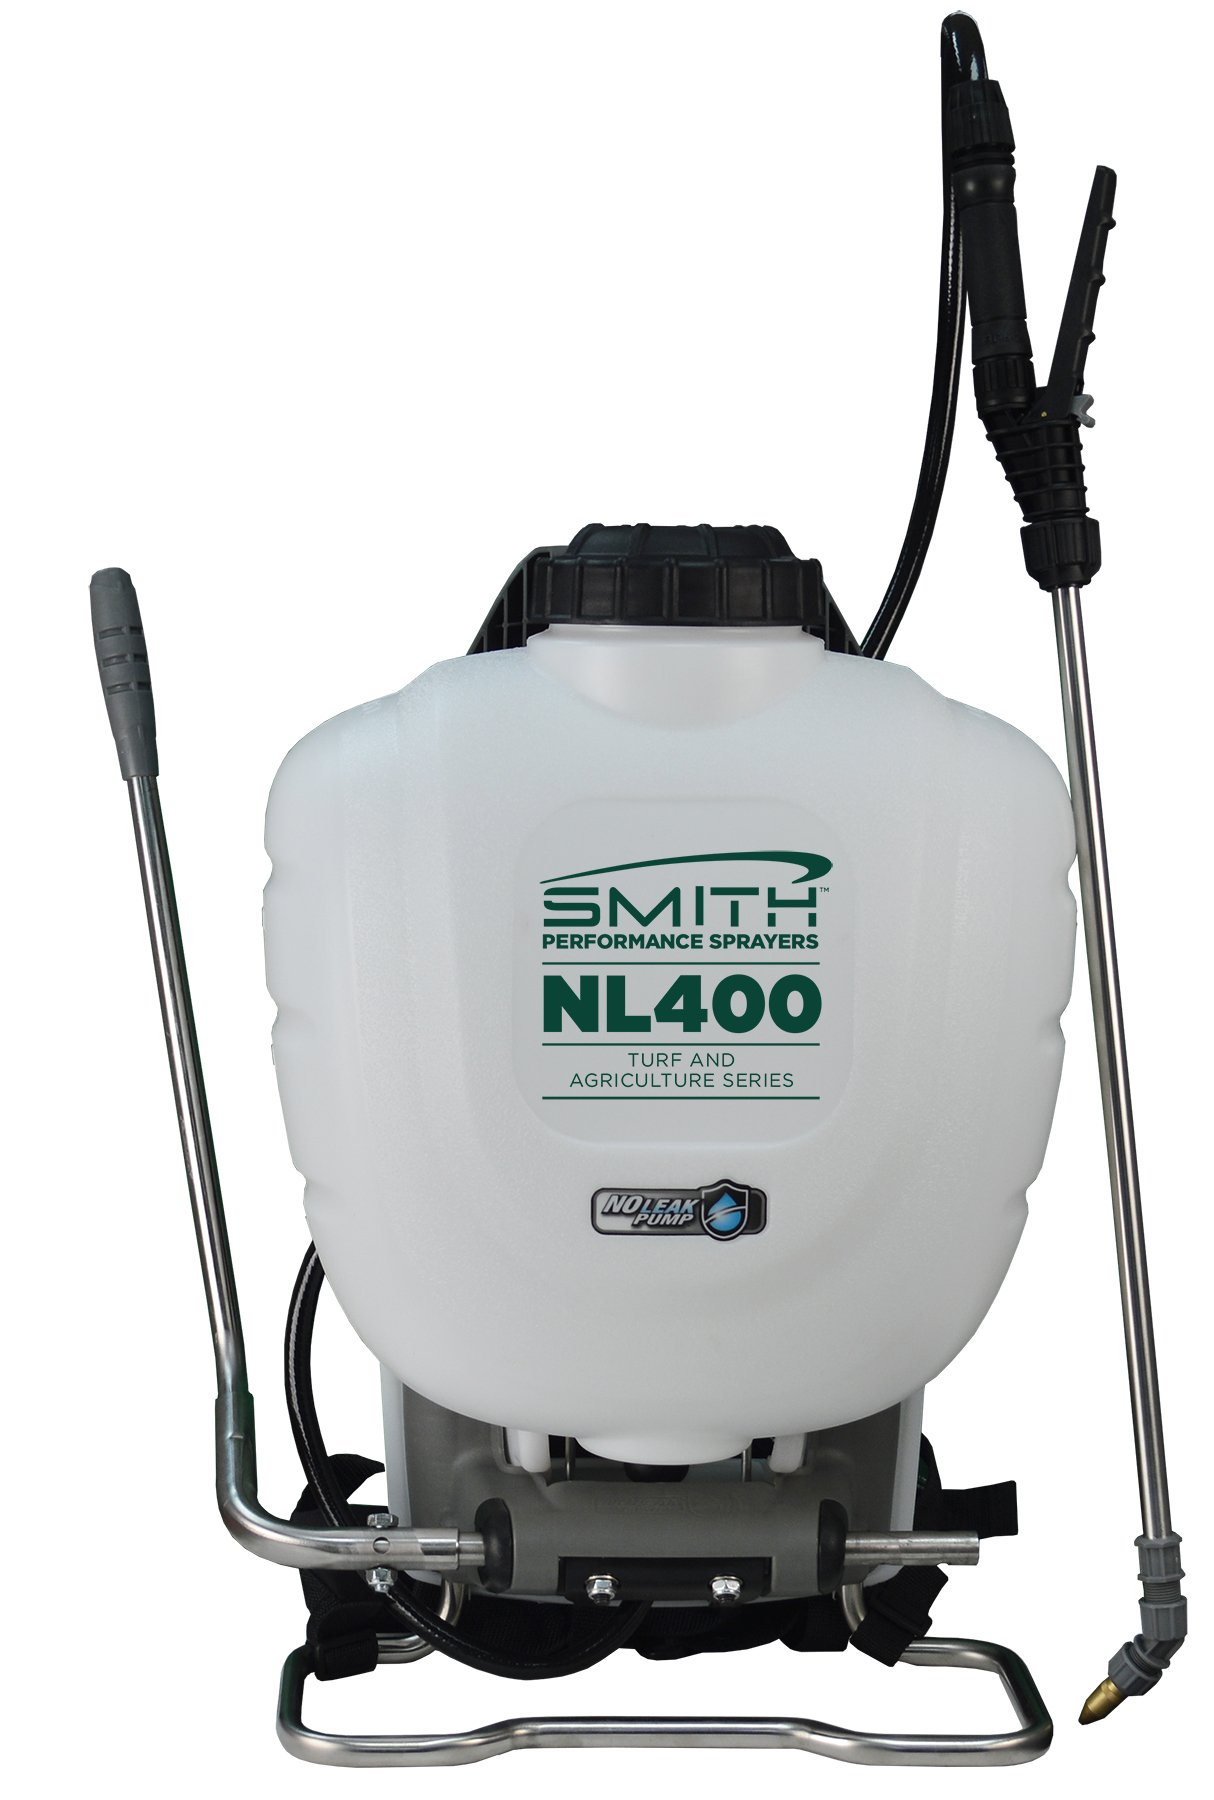 Smith Performance Sprayers NL400 4-Gallon No Leak Backpack Sprayer for Landscapers Applying Weed Killers and Fertilizers by Smith Performance Sprayers